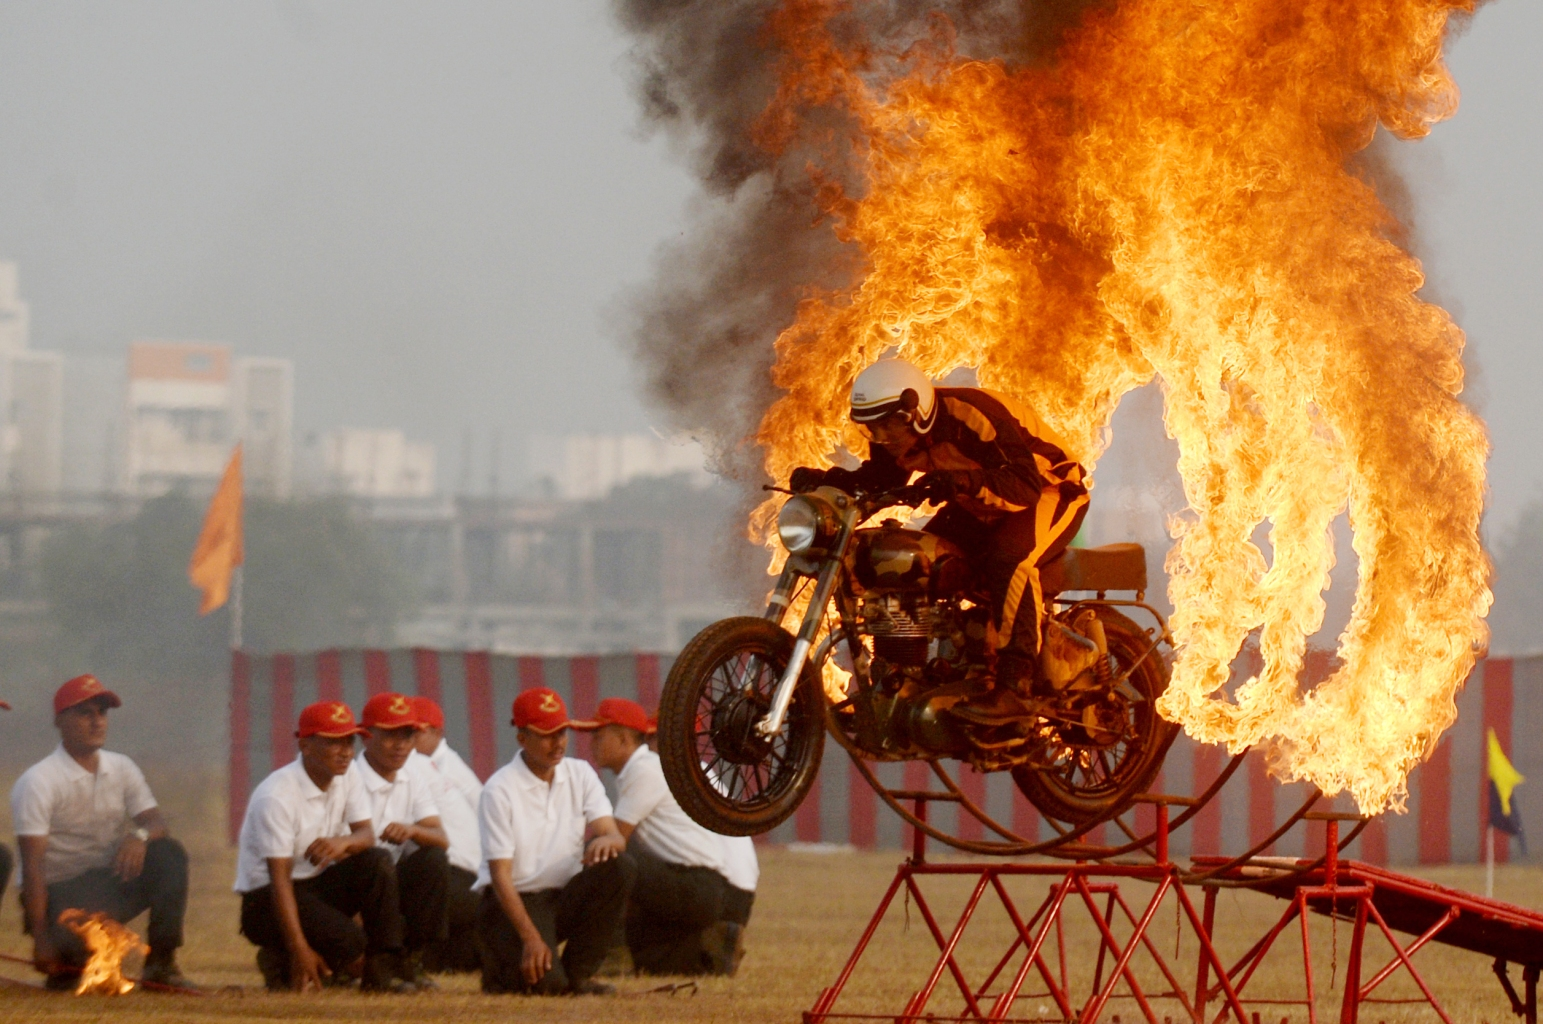 TOPSHOT - An Indian army soldier member of the 'Tornadoes' motorcycle display team rides rings of fire during a combined display at an officer training academy in Chennai on March 9, 2018. / AFP PHOTO / ARUN SANKAR        (Photo credit should read ARUN SANKAR/AFP/Getty Images)